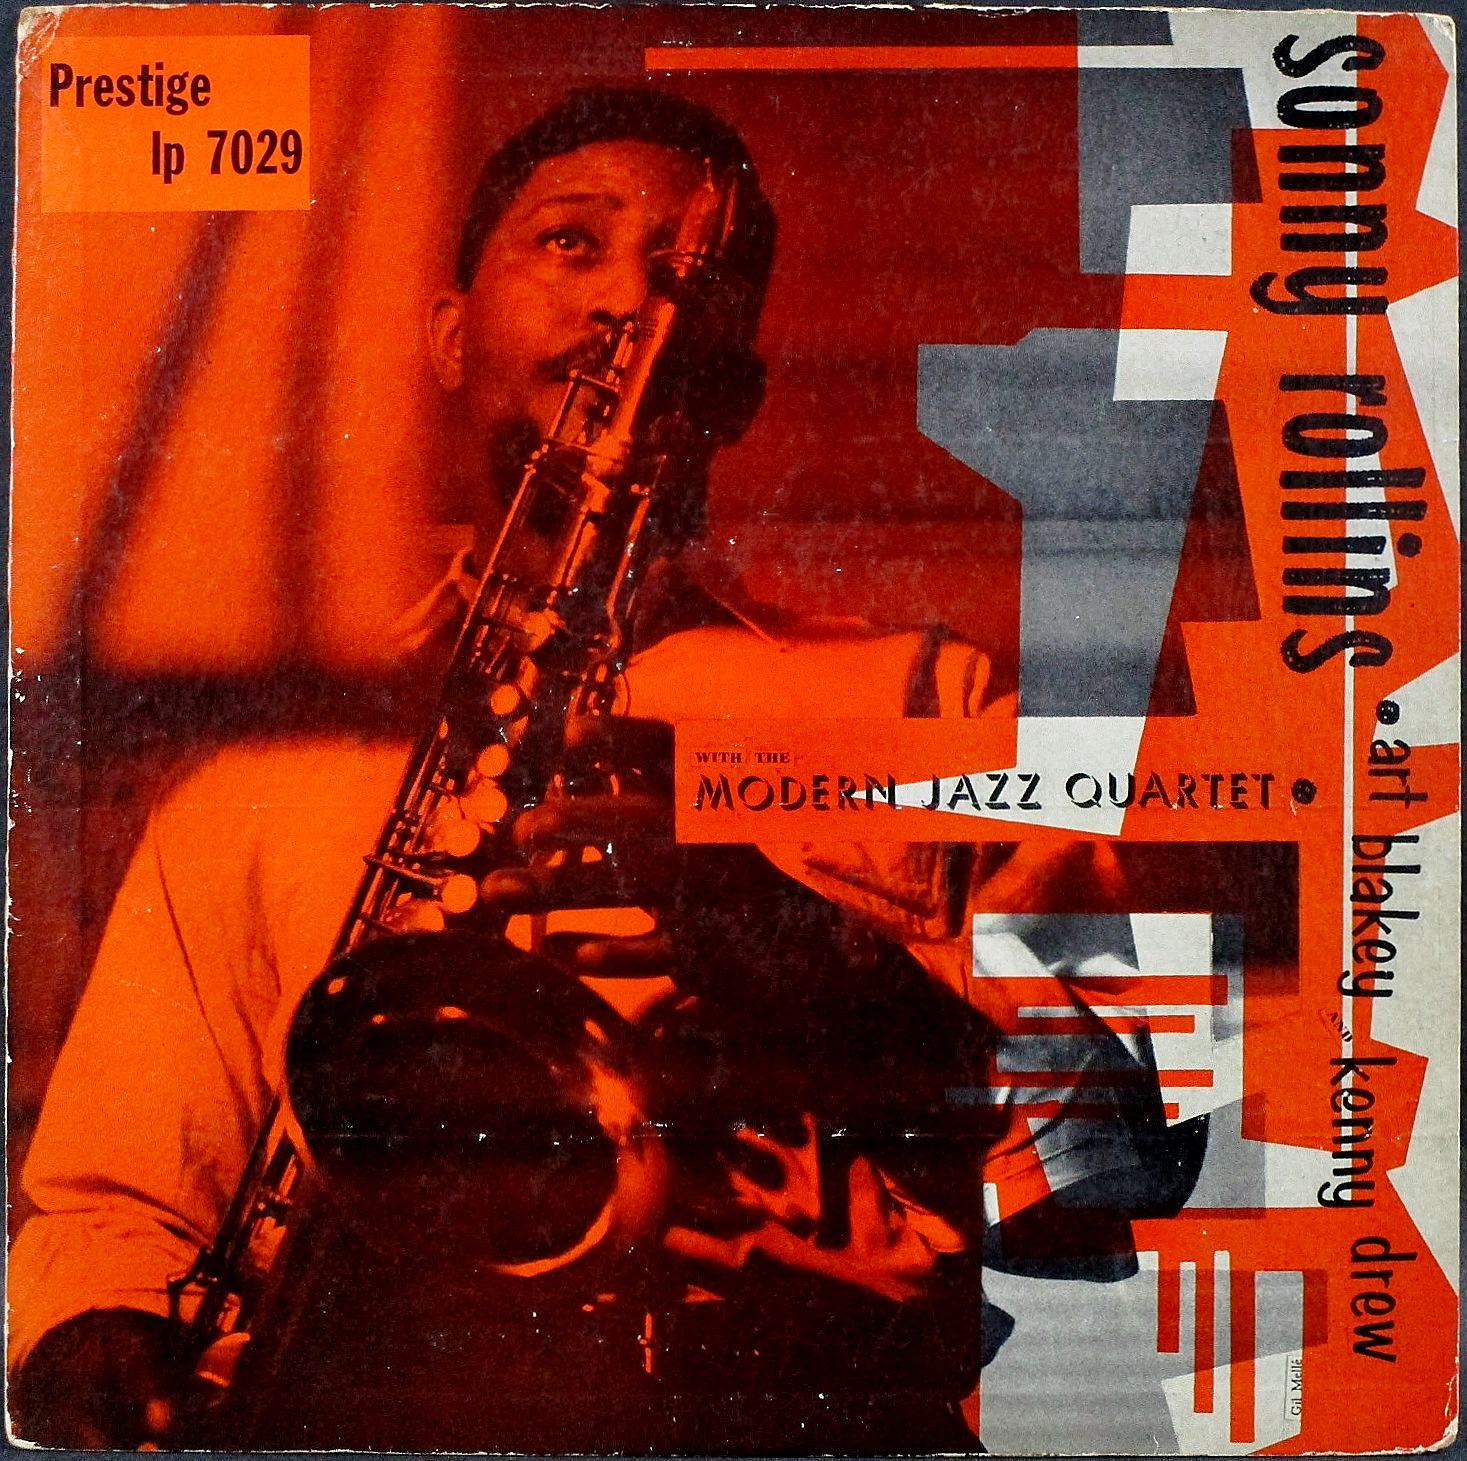 Sonny Rollins ソニー・ロリンズ / Sonny Rollins With The Modern Jazz Quartet